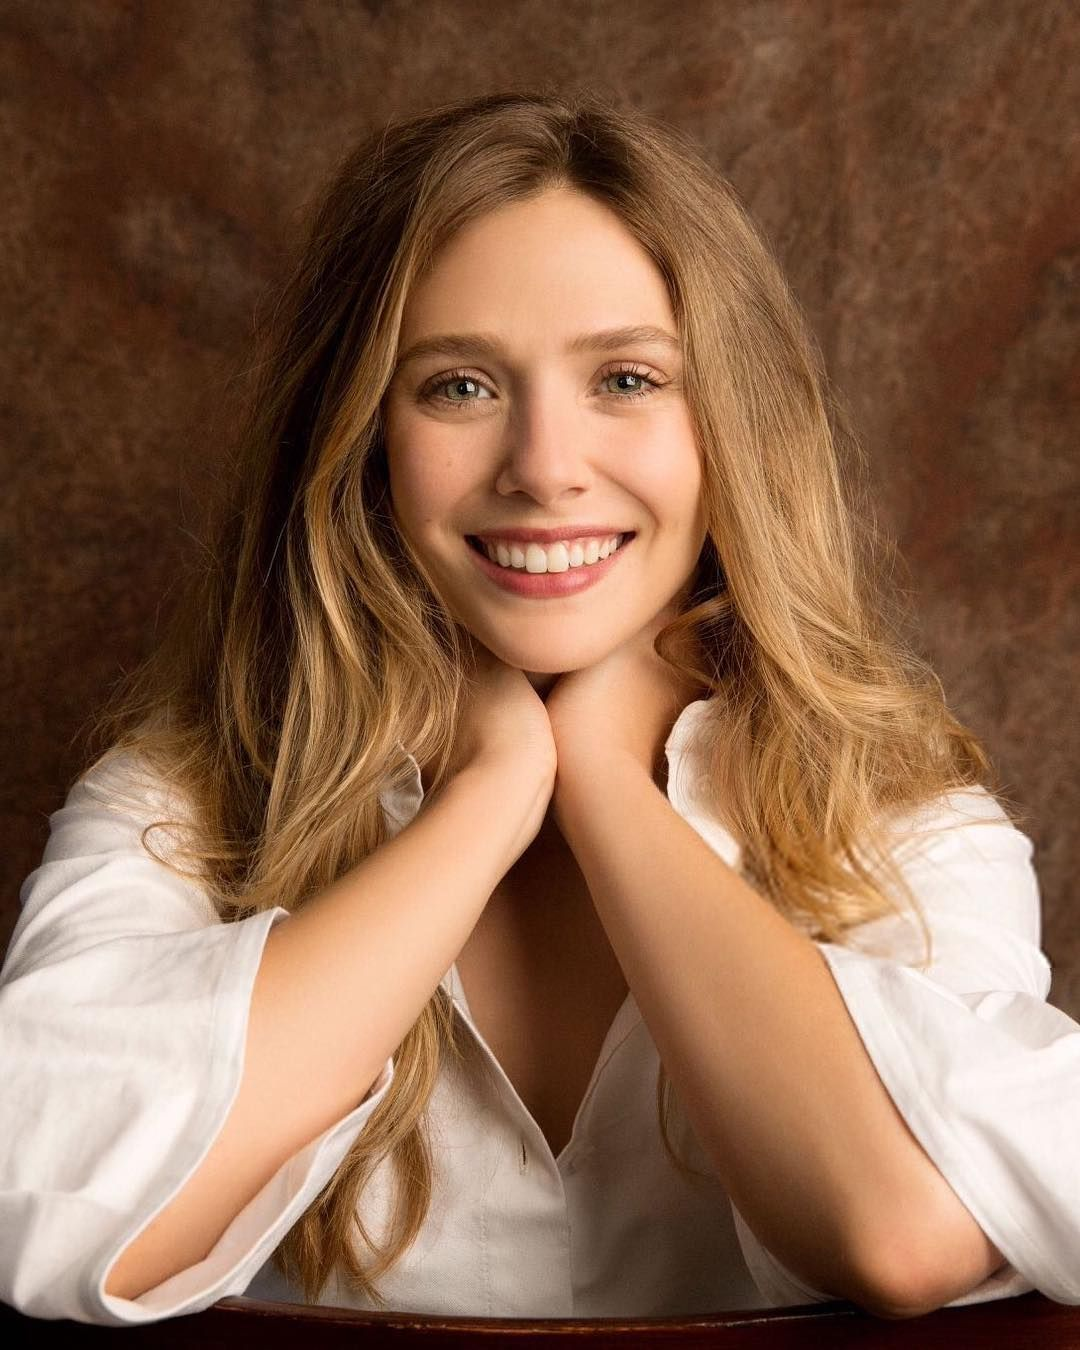 Elizabeth Olsen Elizabetholsen Ig On Instagram Hello Everyone Did You Miss Me Los Angeles Times Elizabeth Olsen Olsen Elizabeth Olsen Scarlet Witch